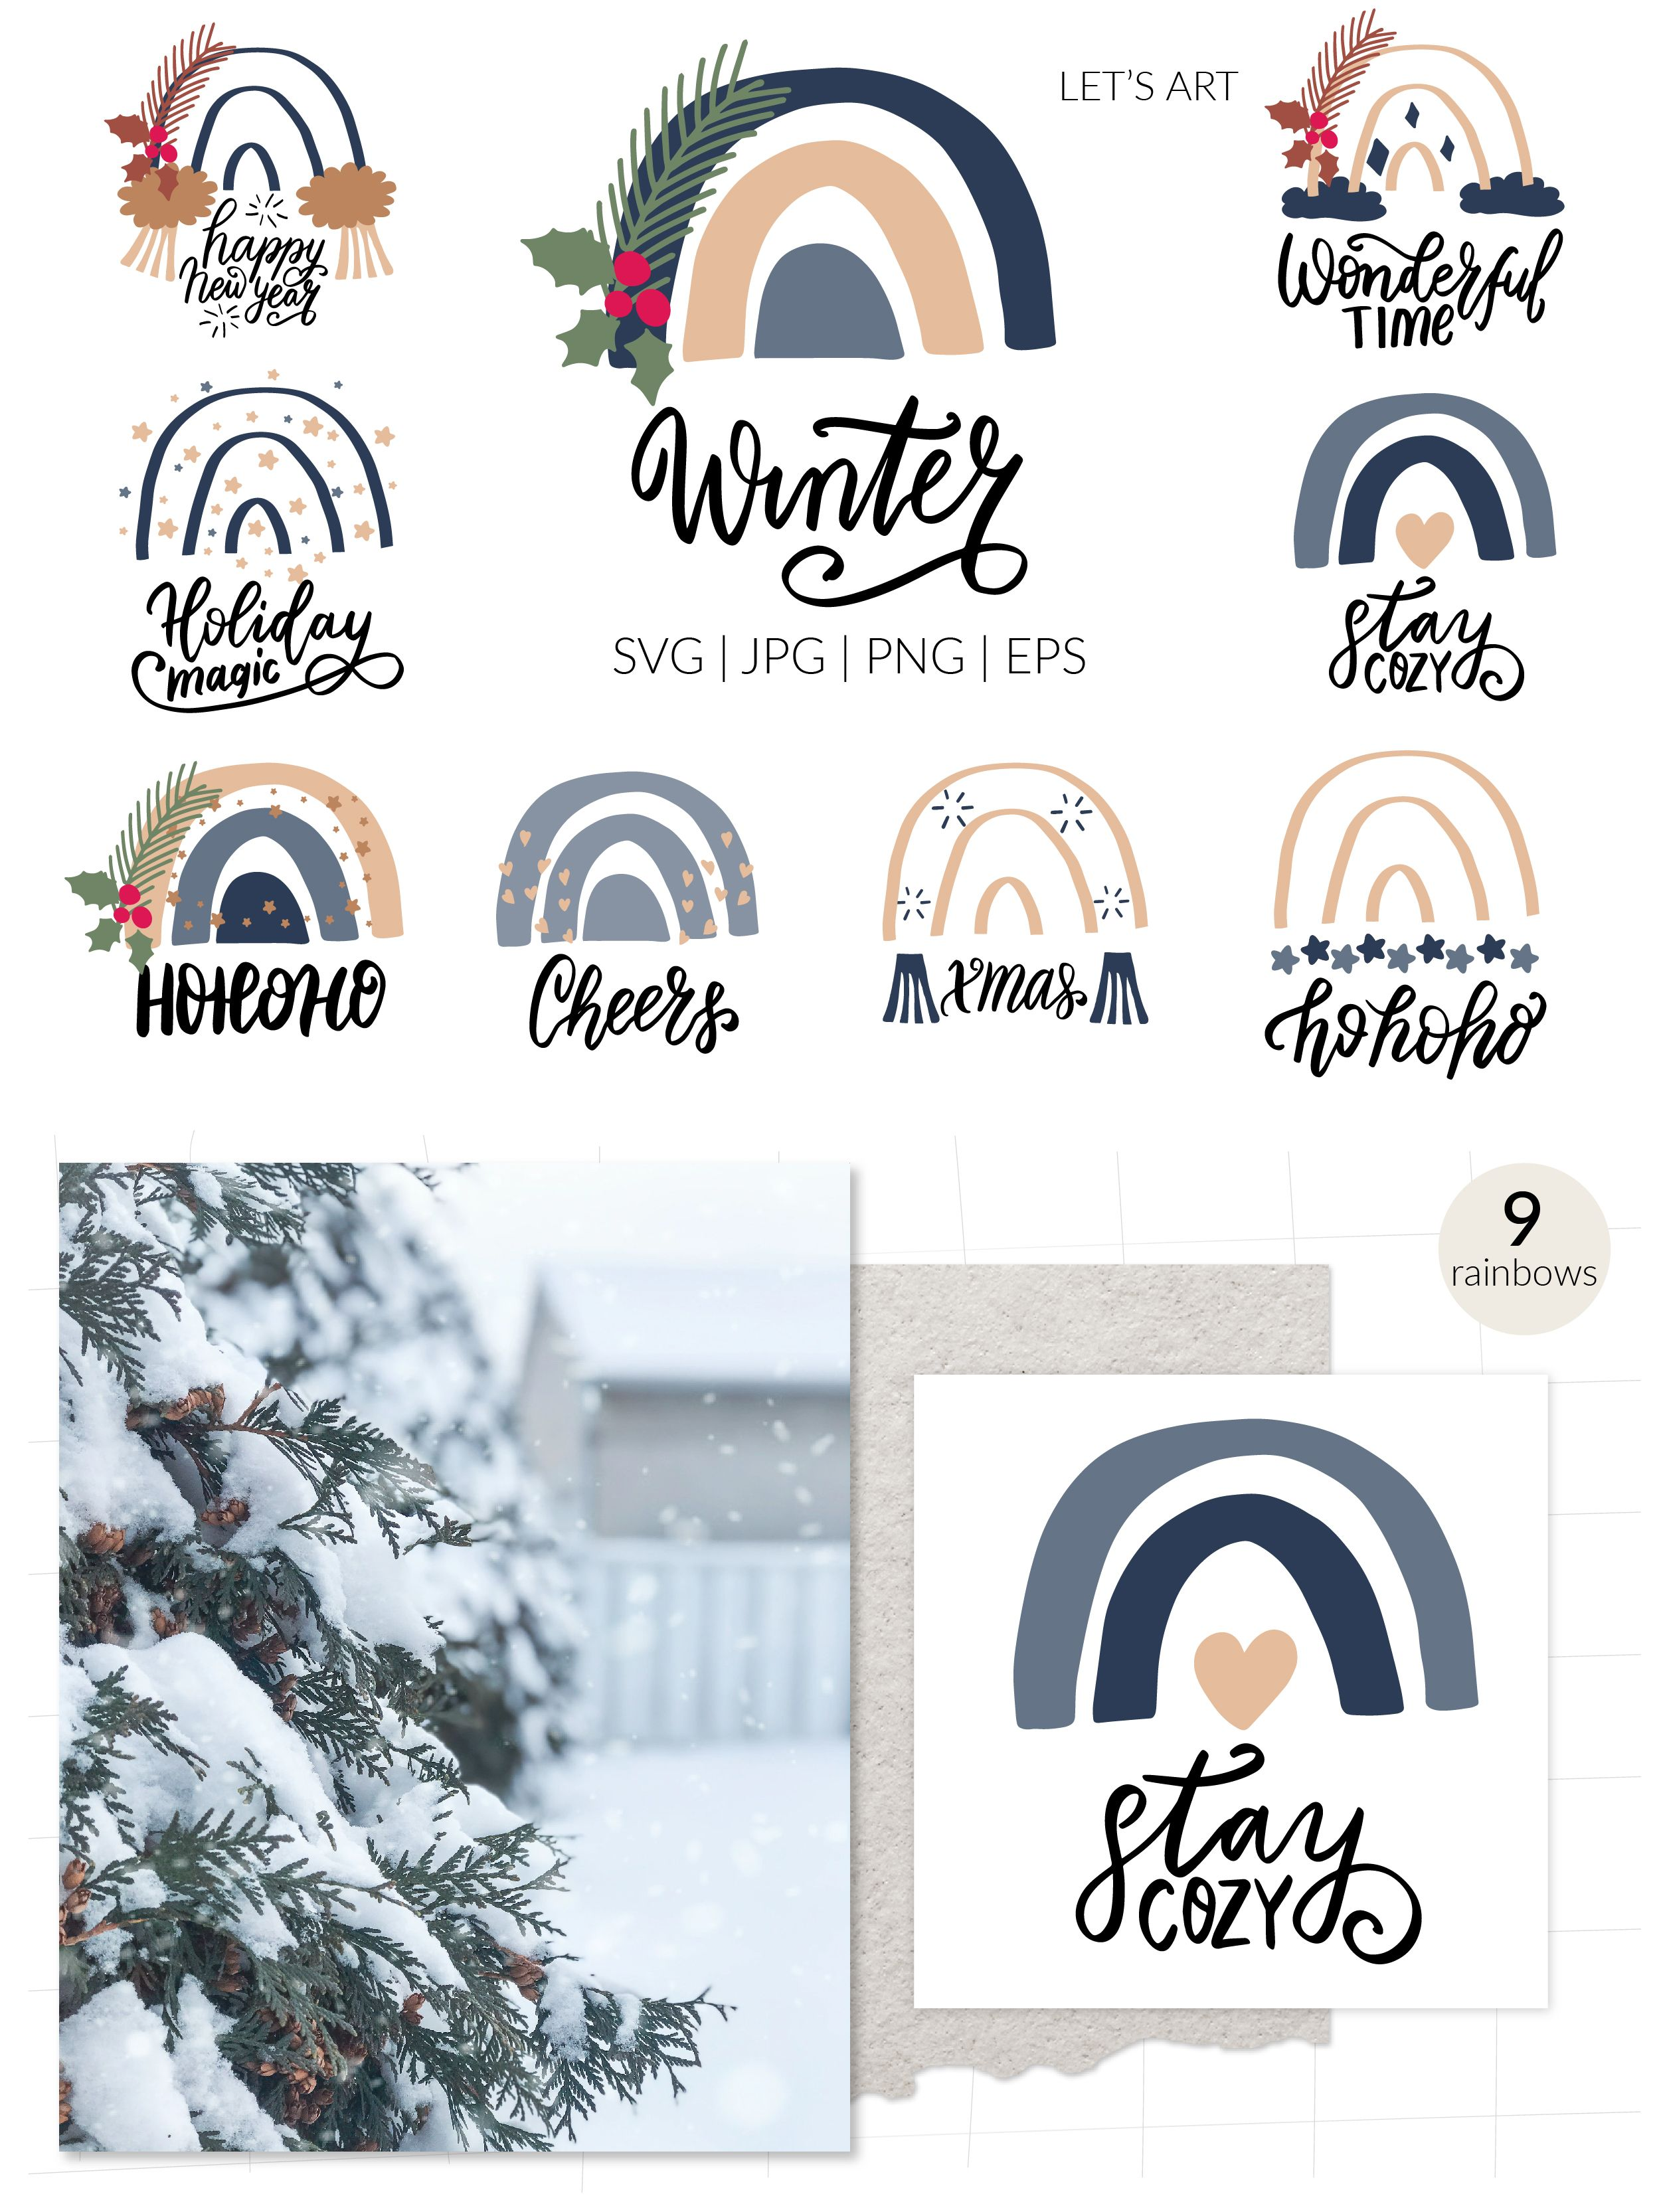 Navy Christmas rainbows svg with funny Christmas quotes. Rainbows clipart. Christmas quotes svg.